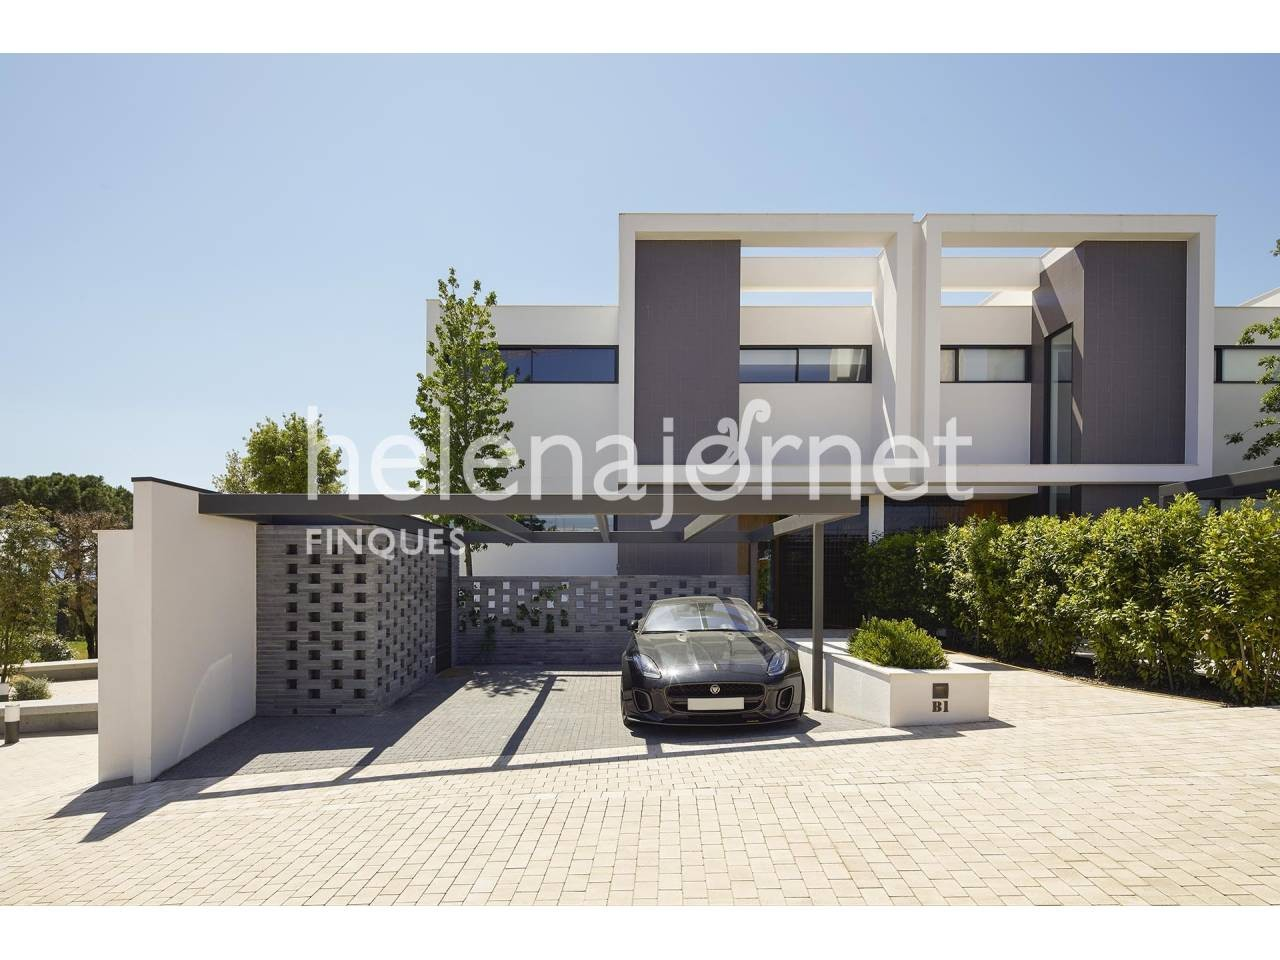 Design corner townhouse with terrace and private garden - 1521